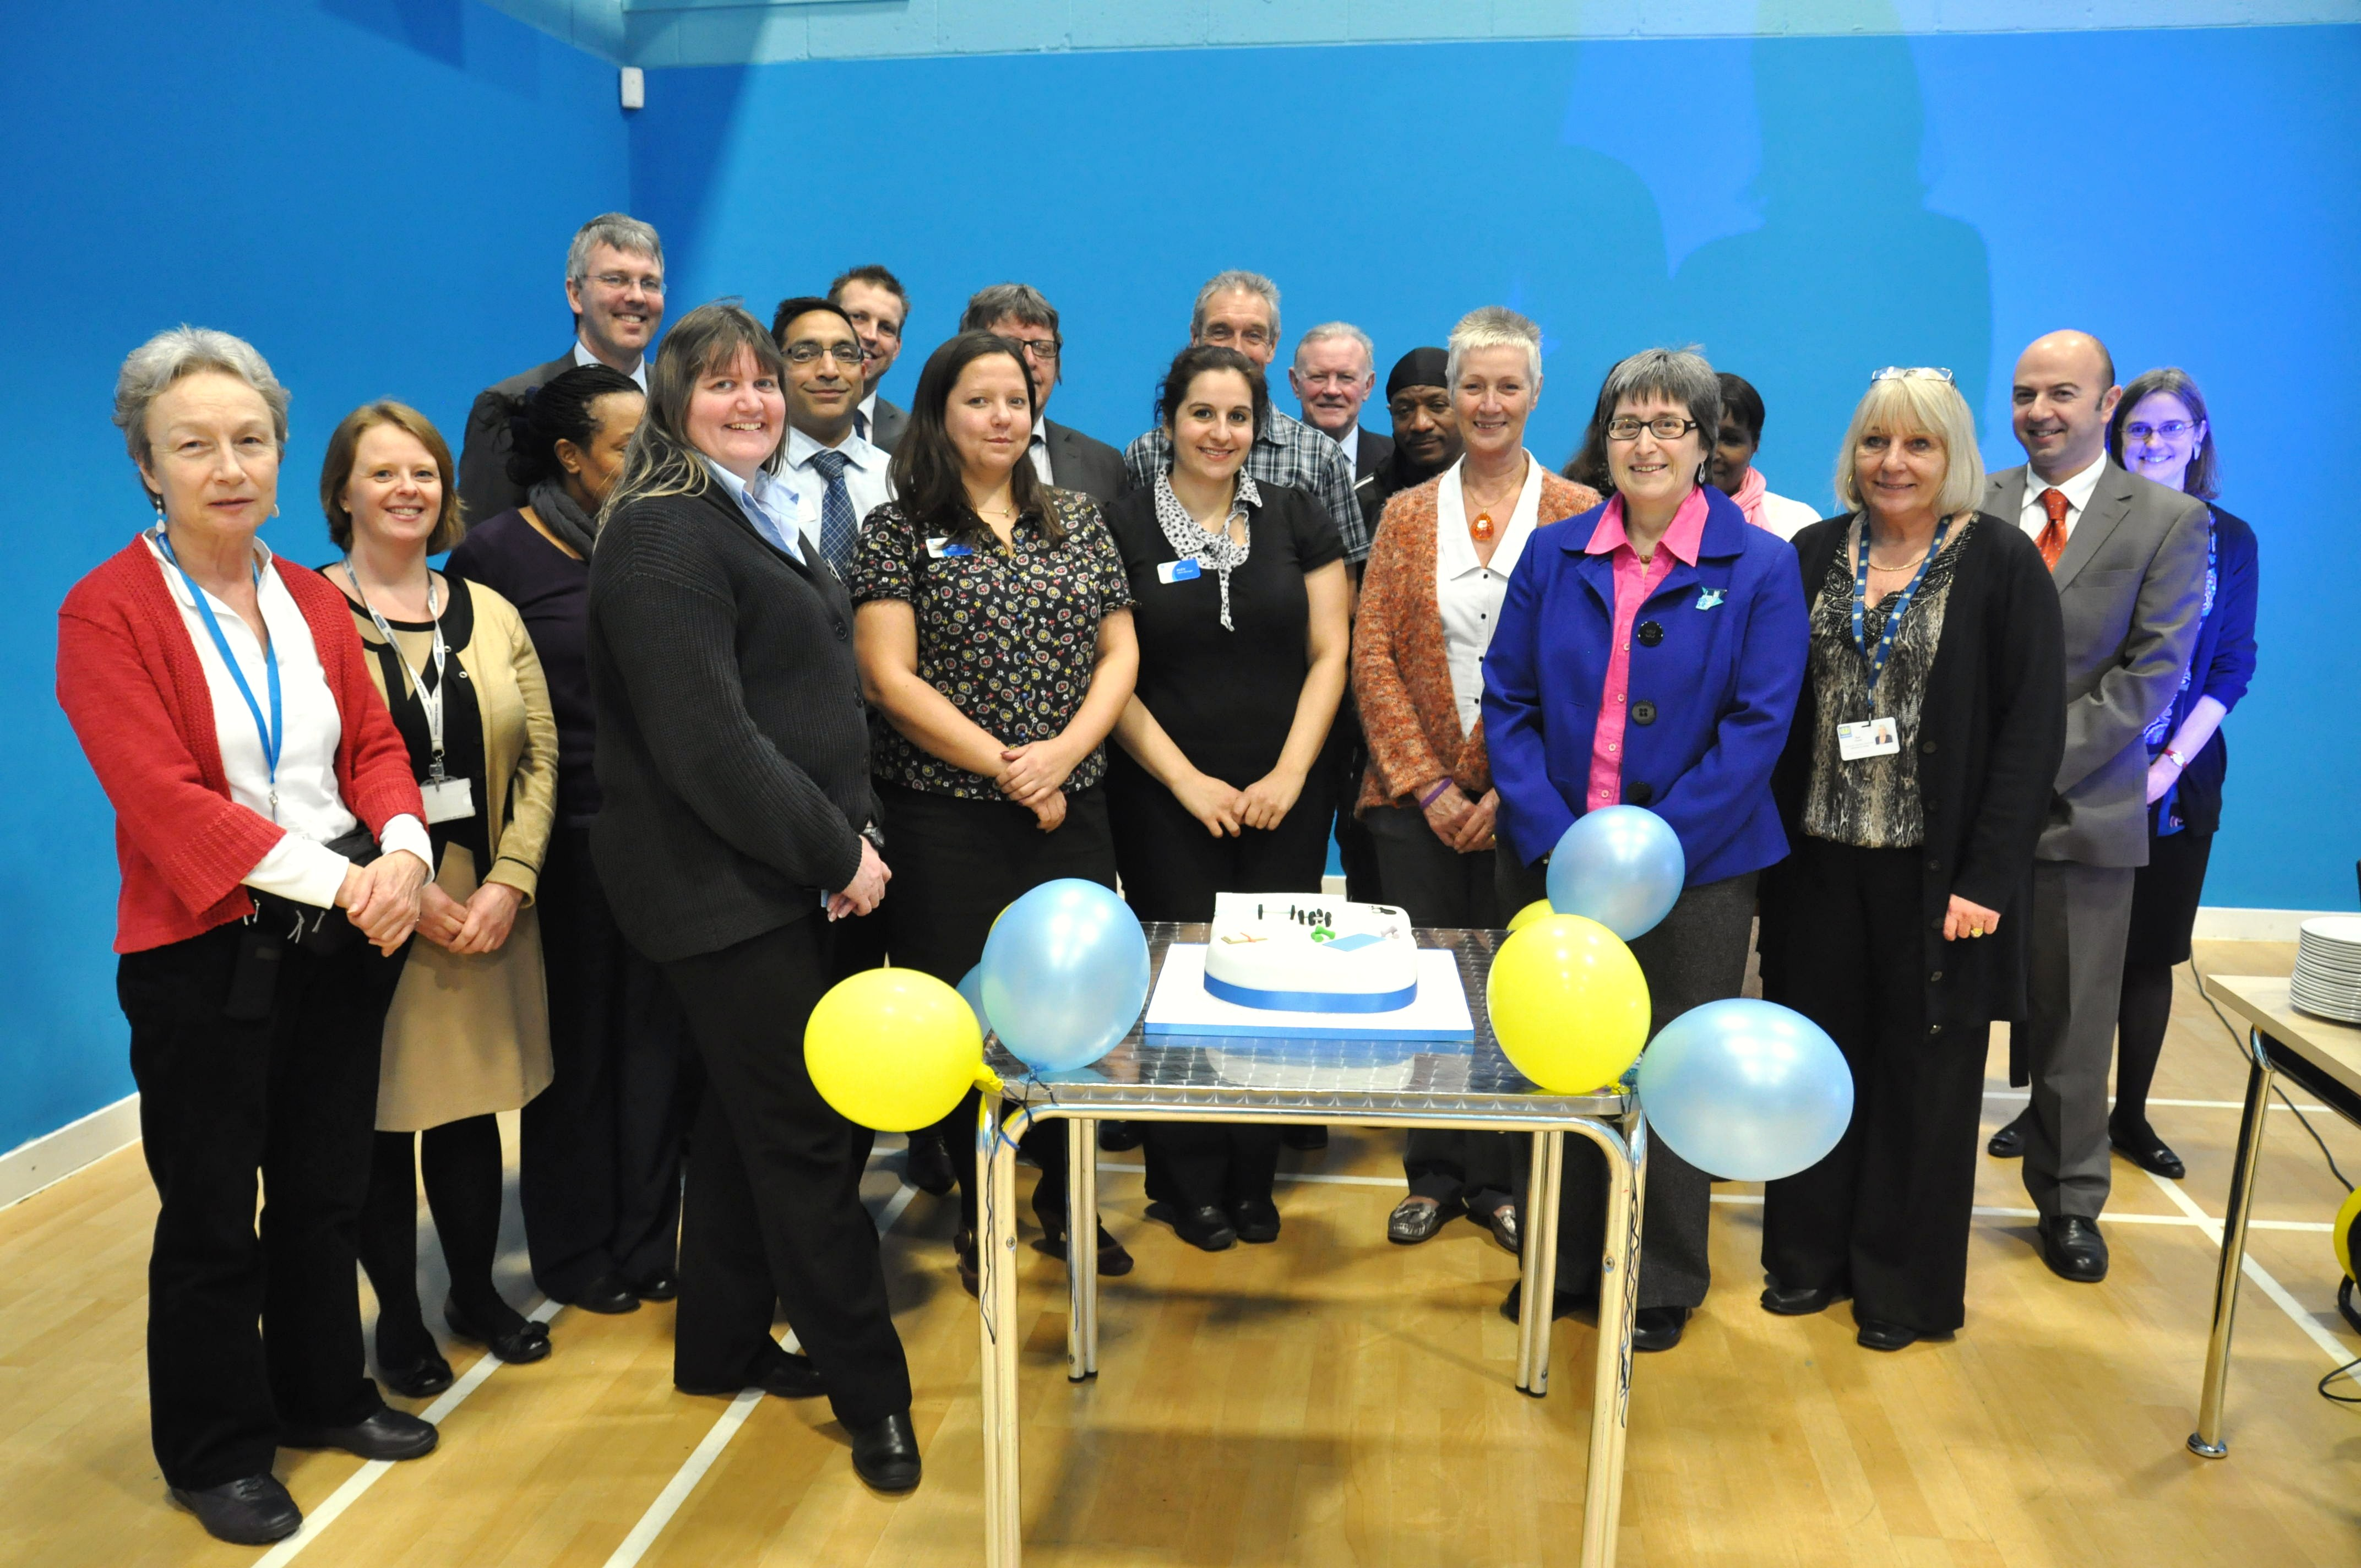 The leisure centre, library and medical practice hosted an action packed couple of days, full of community, sporting and fun events aimed at all ages